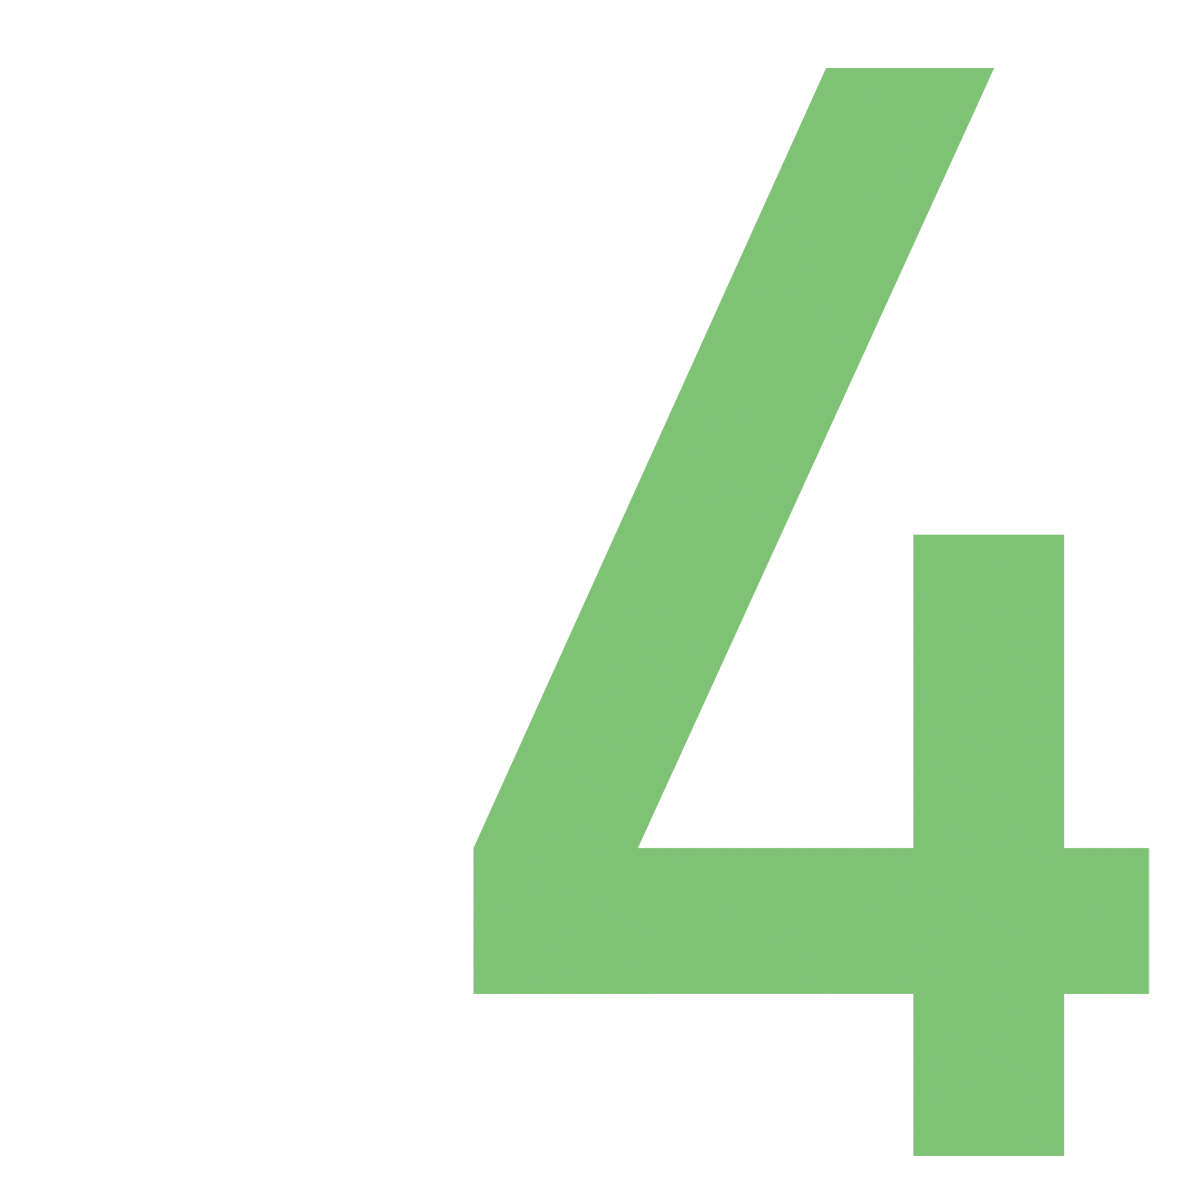 number 4 design studio